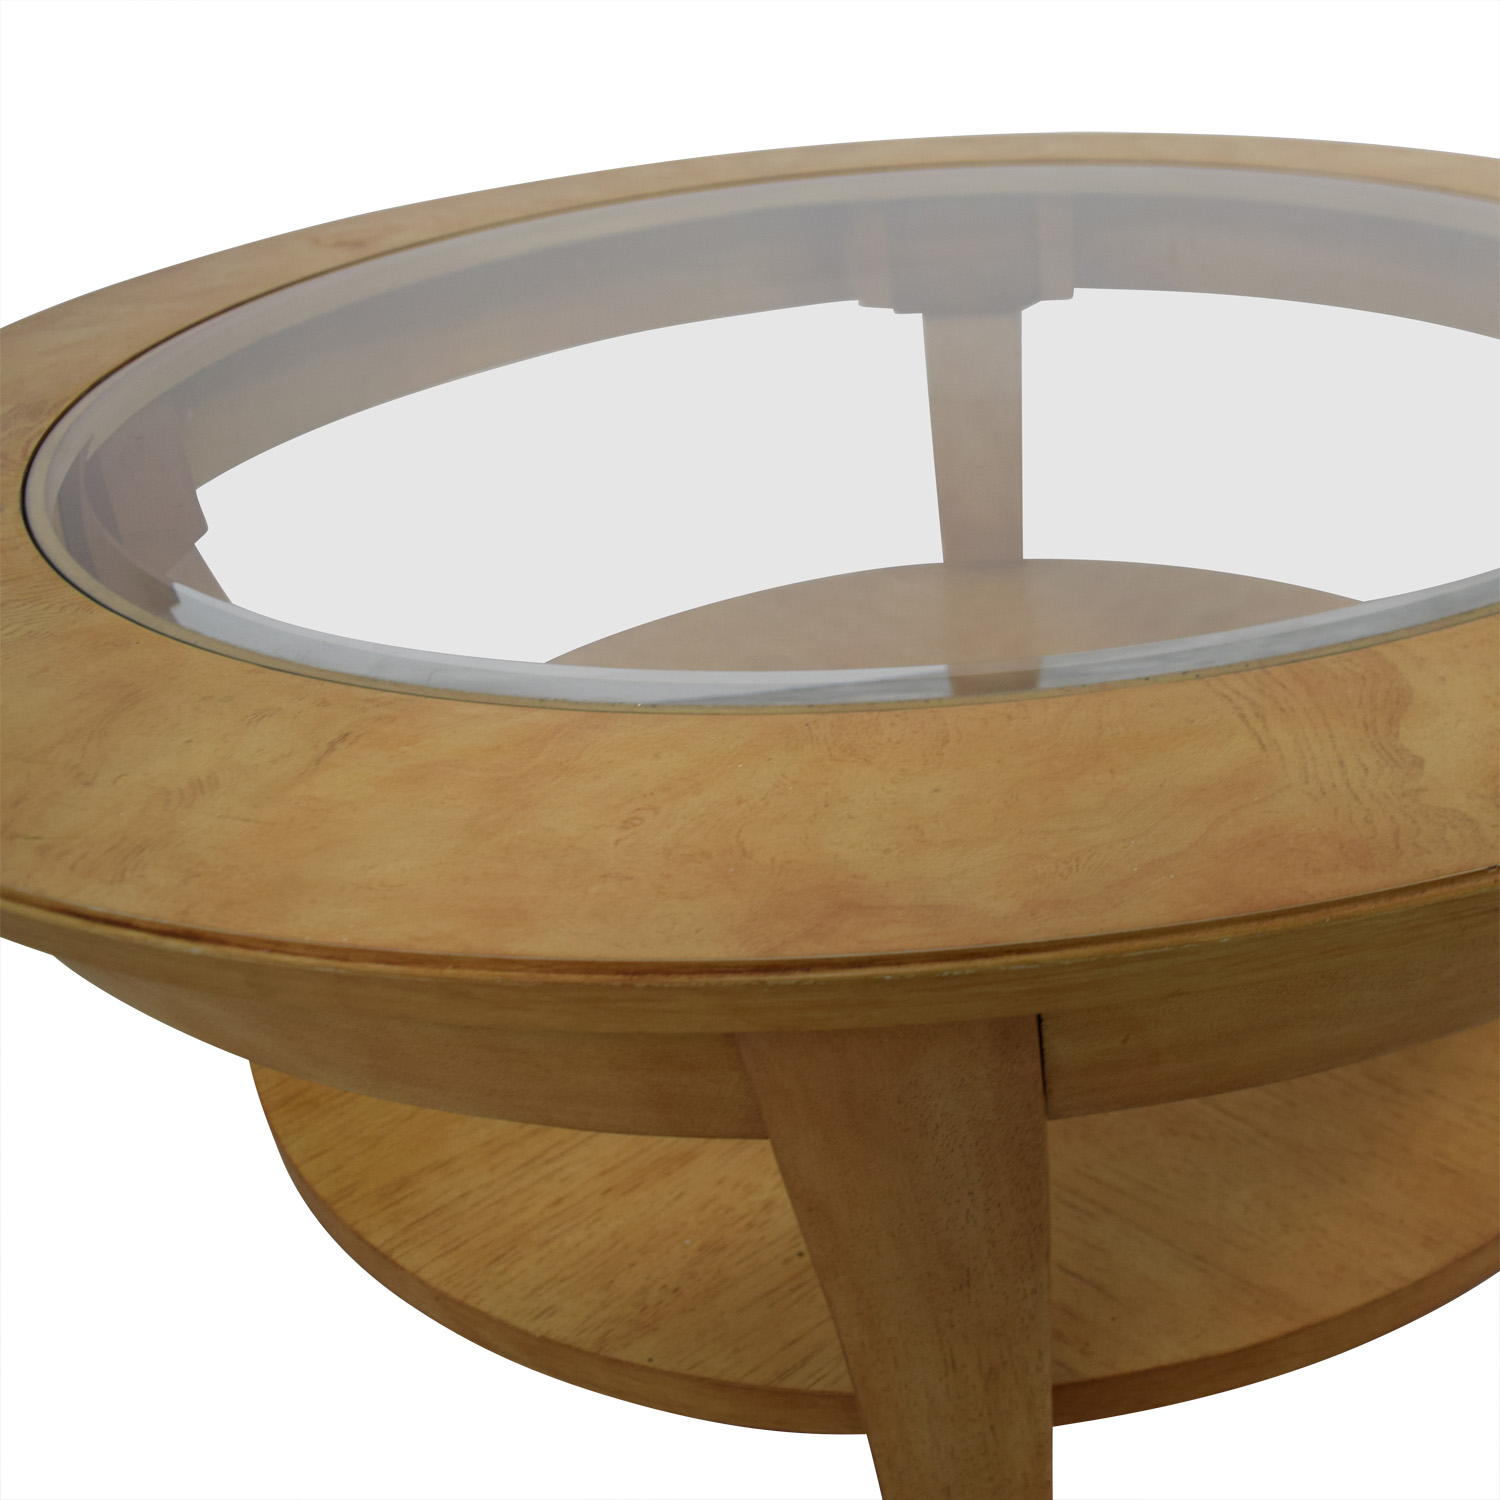 Round Glass and Wood Cocktail Table dimensions